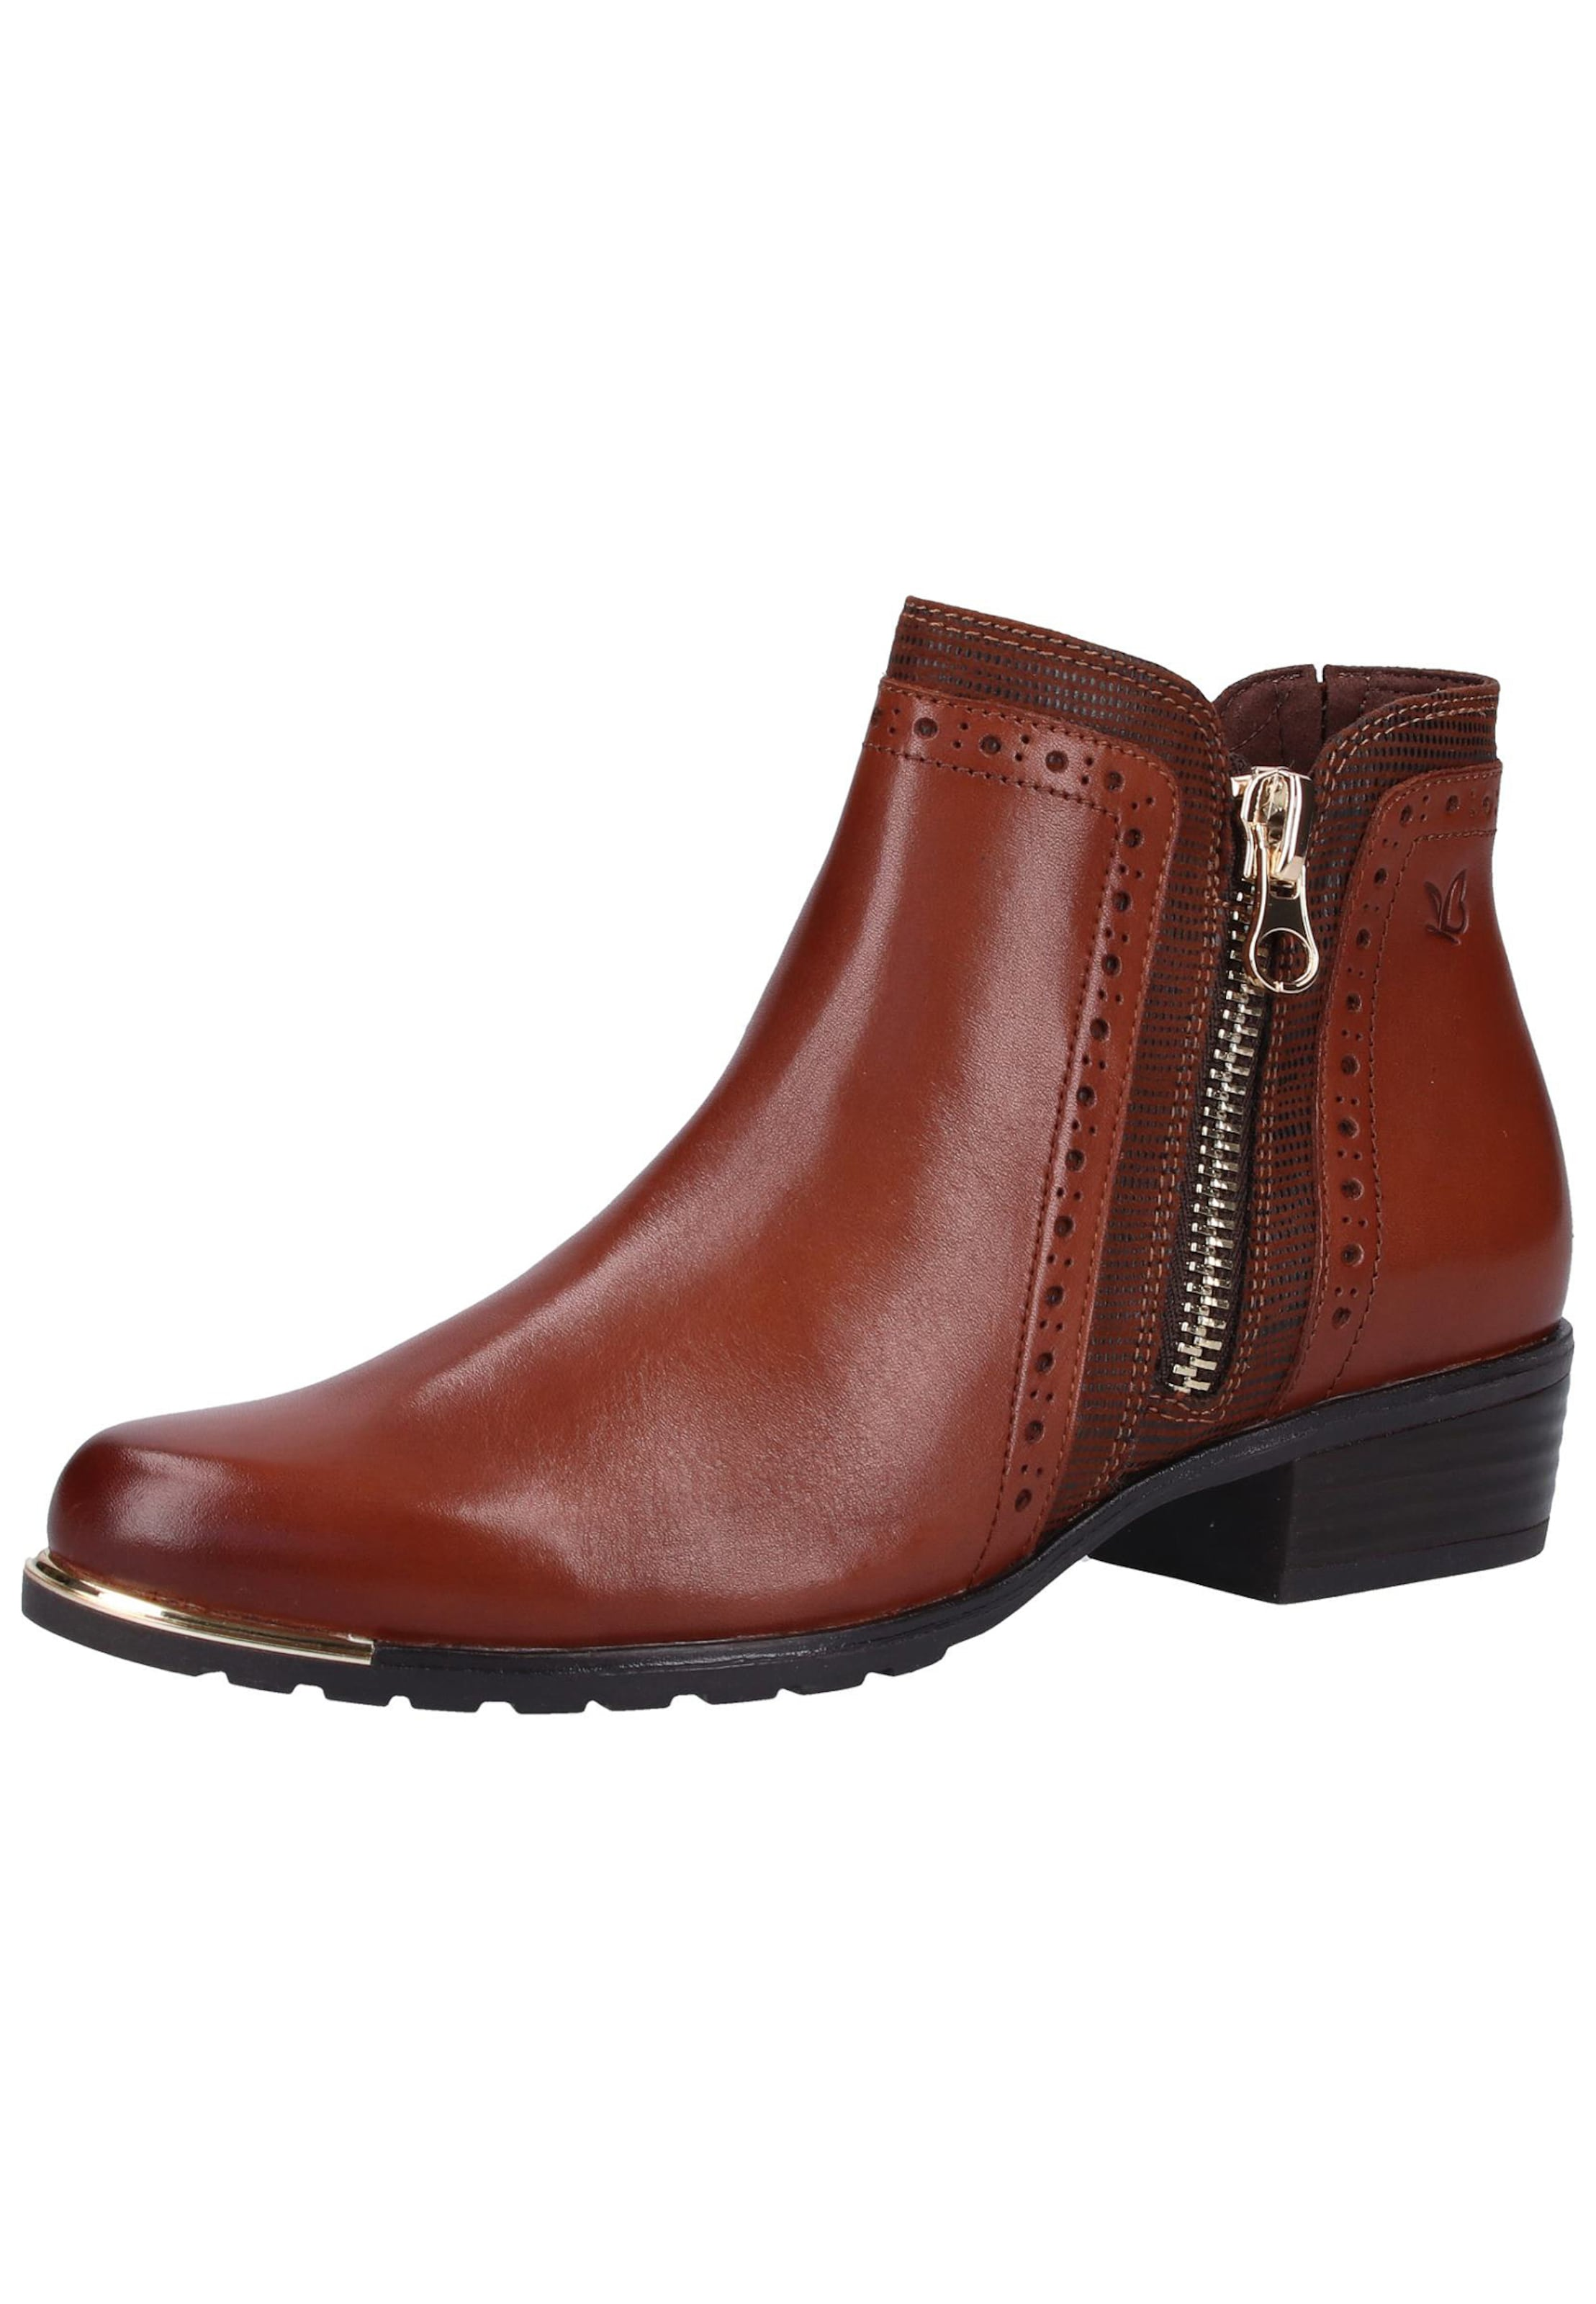 CAPRICE Ankle Stiefel in rostbraun